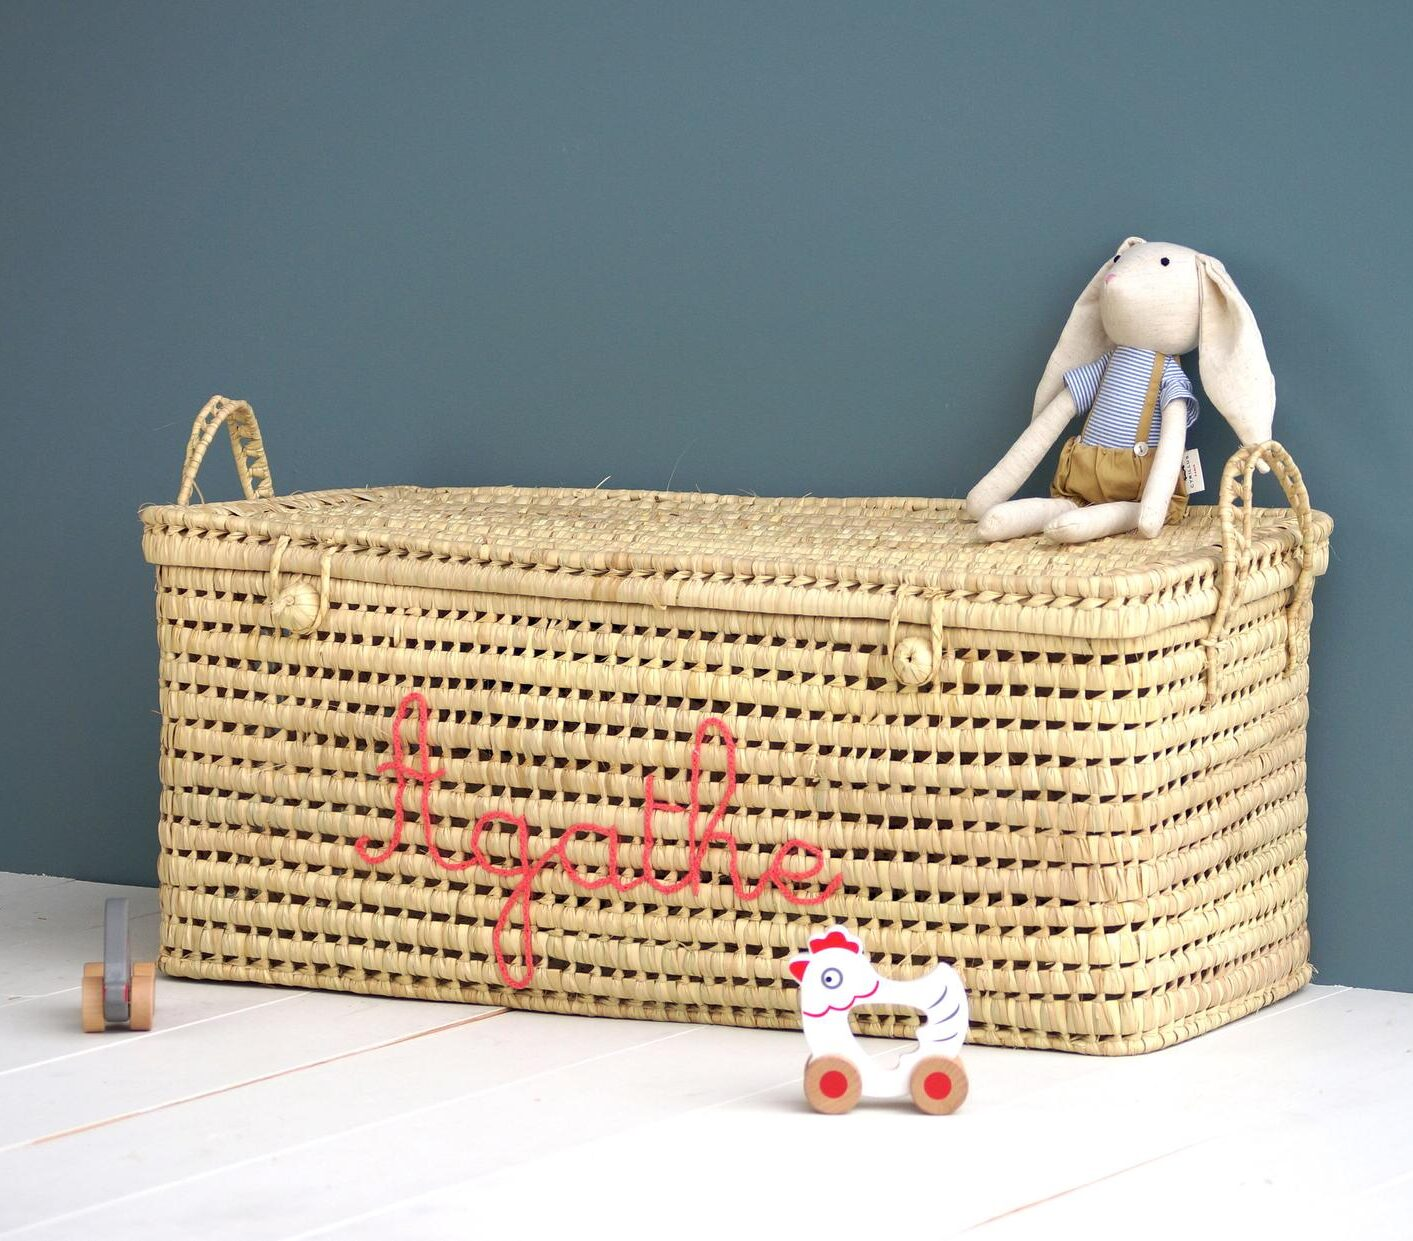 Personalized Palm Leaf Storage Toy Trunk - Rattan Basket with Lid, bunny stuffed toy, and wooden chicken toy for Summer Must-Haves